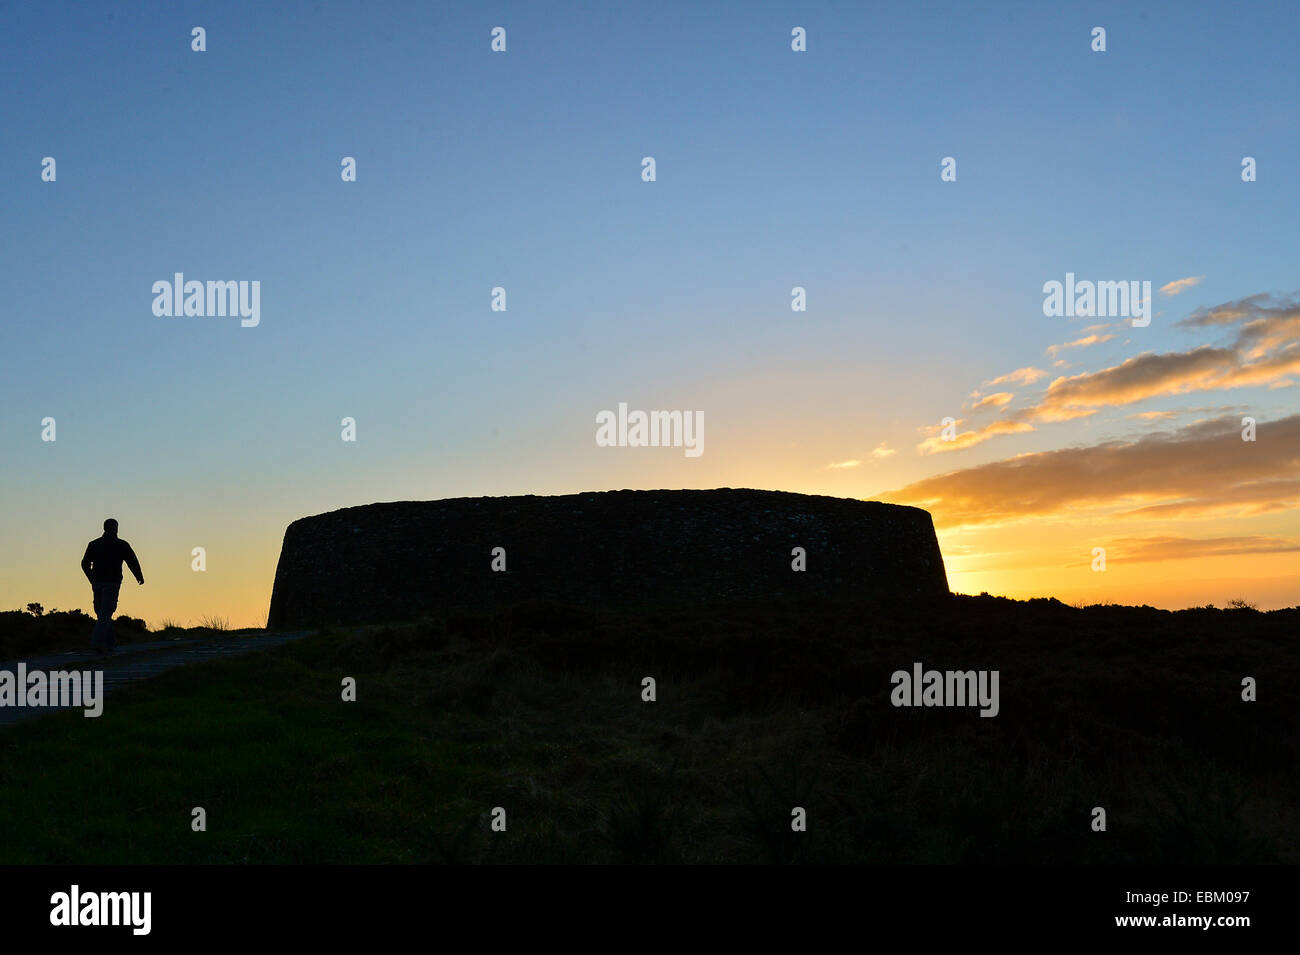 North West Donegal, Ireland. 2nd December 2014. Irish weather: Grianan of Aileach, an ancient stone fort in Donegal, - Stock Image